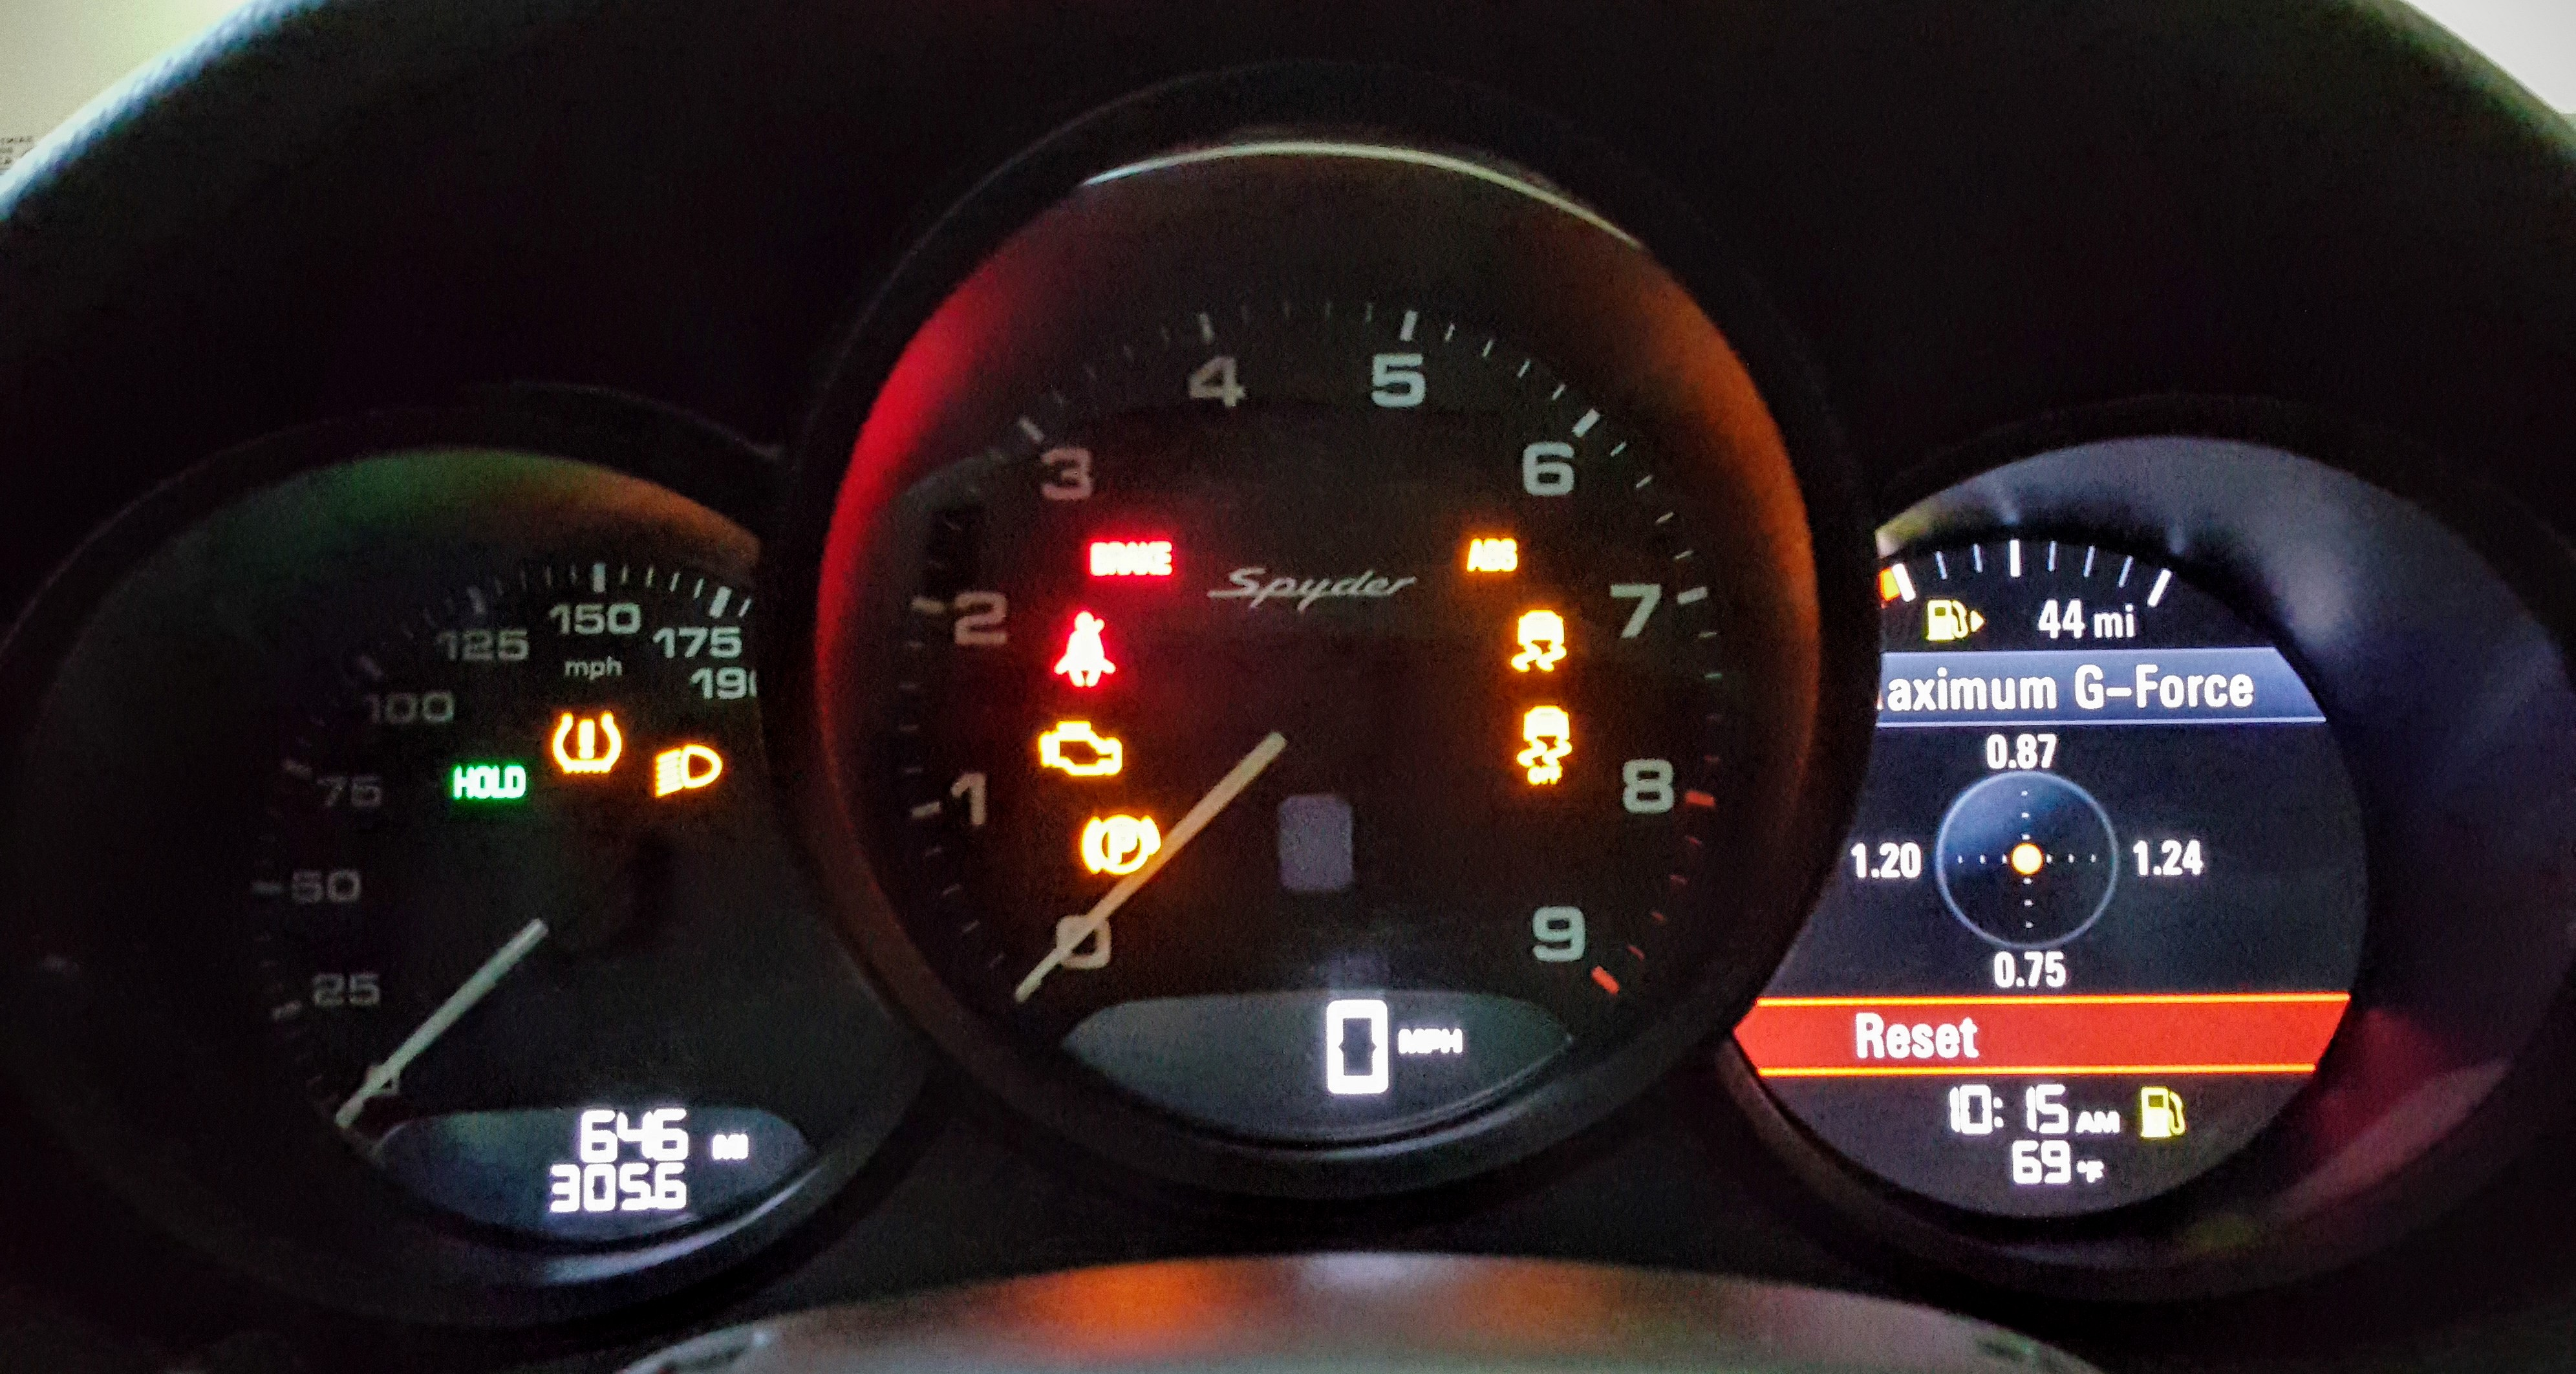 Cayman Gts G Force Meter Accuracy Page 2